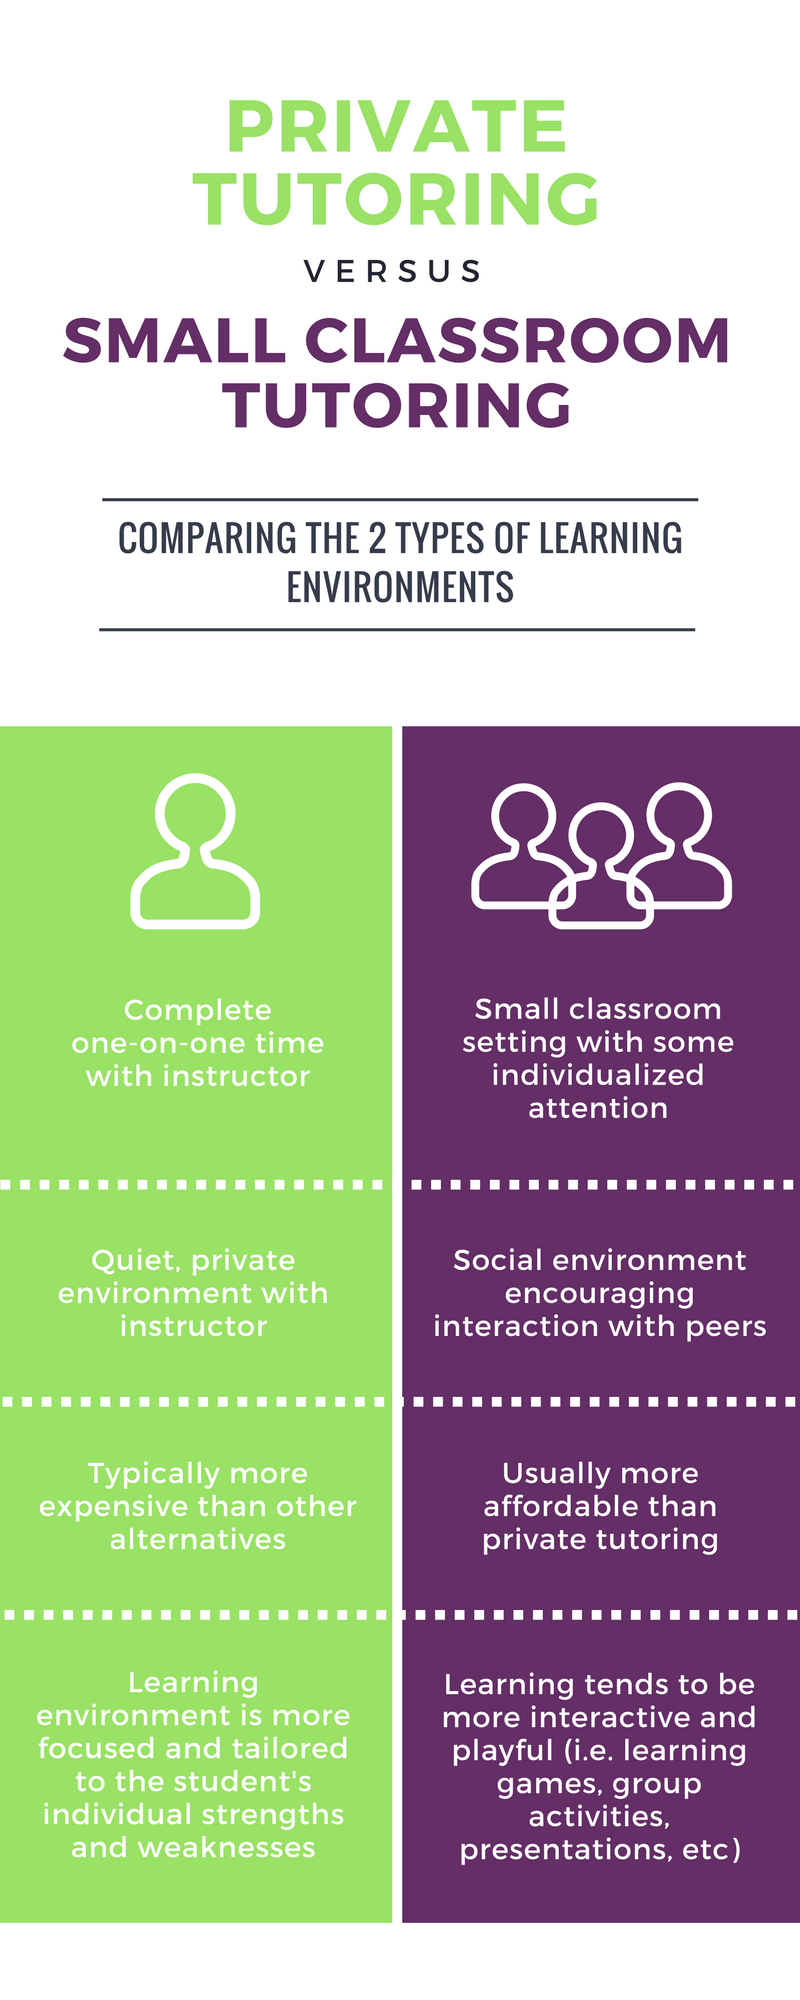 Private Tutoring vs. Small Class Tutoring infographic : Which is better?